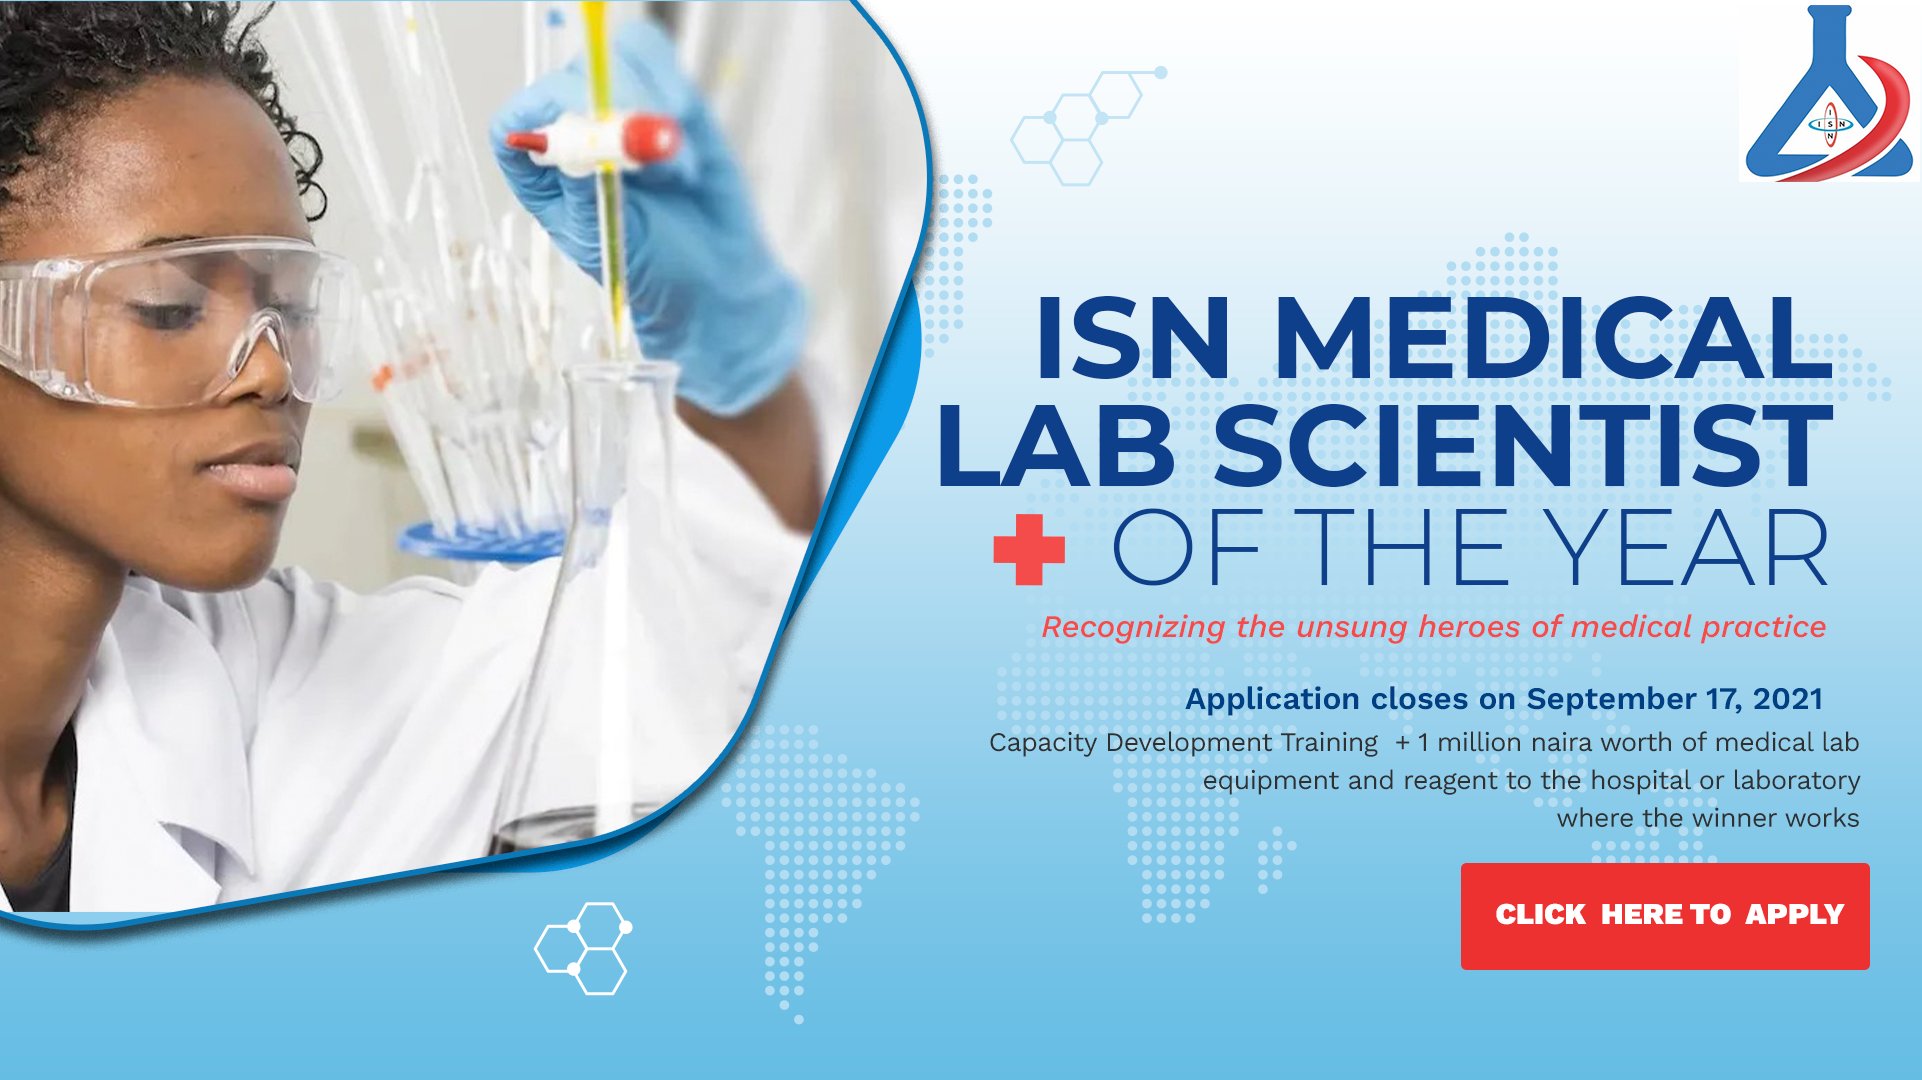 ISN MEDICAL LABORATORY SCIENTIST OF THE YEAR AWARD